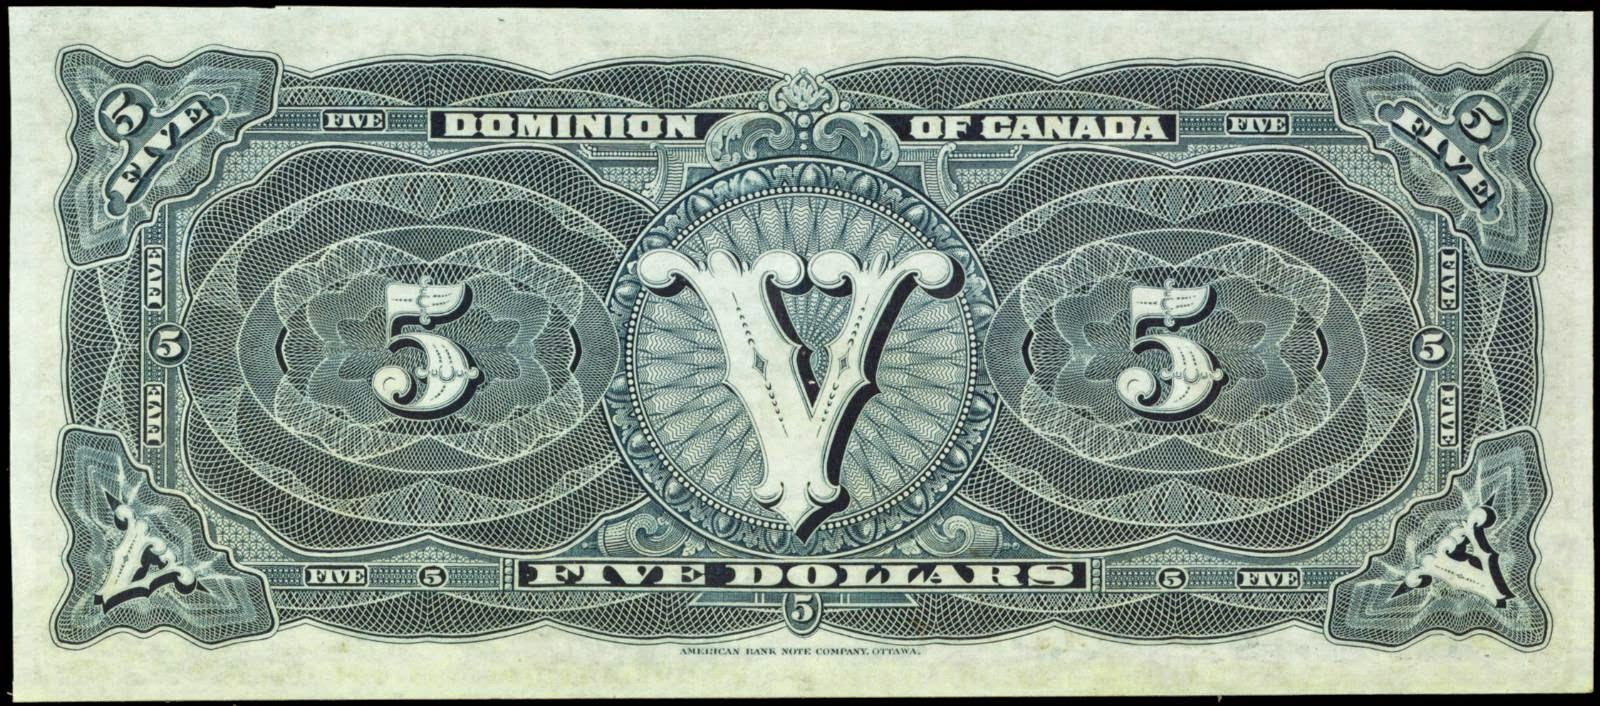 Dominion of Canada 1912 5 Dollar Bill